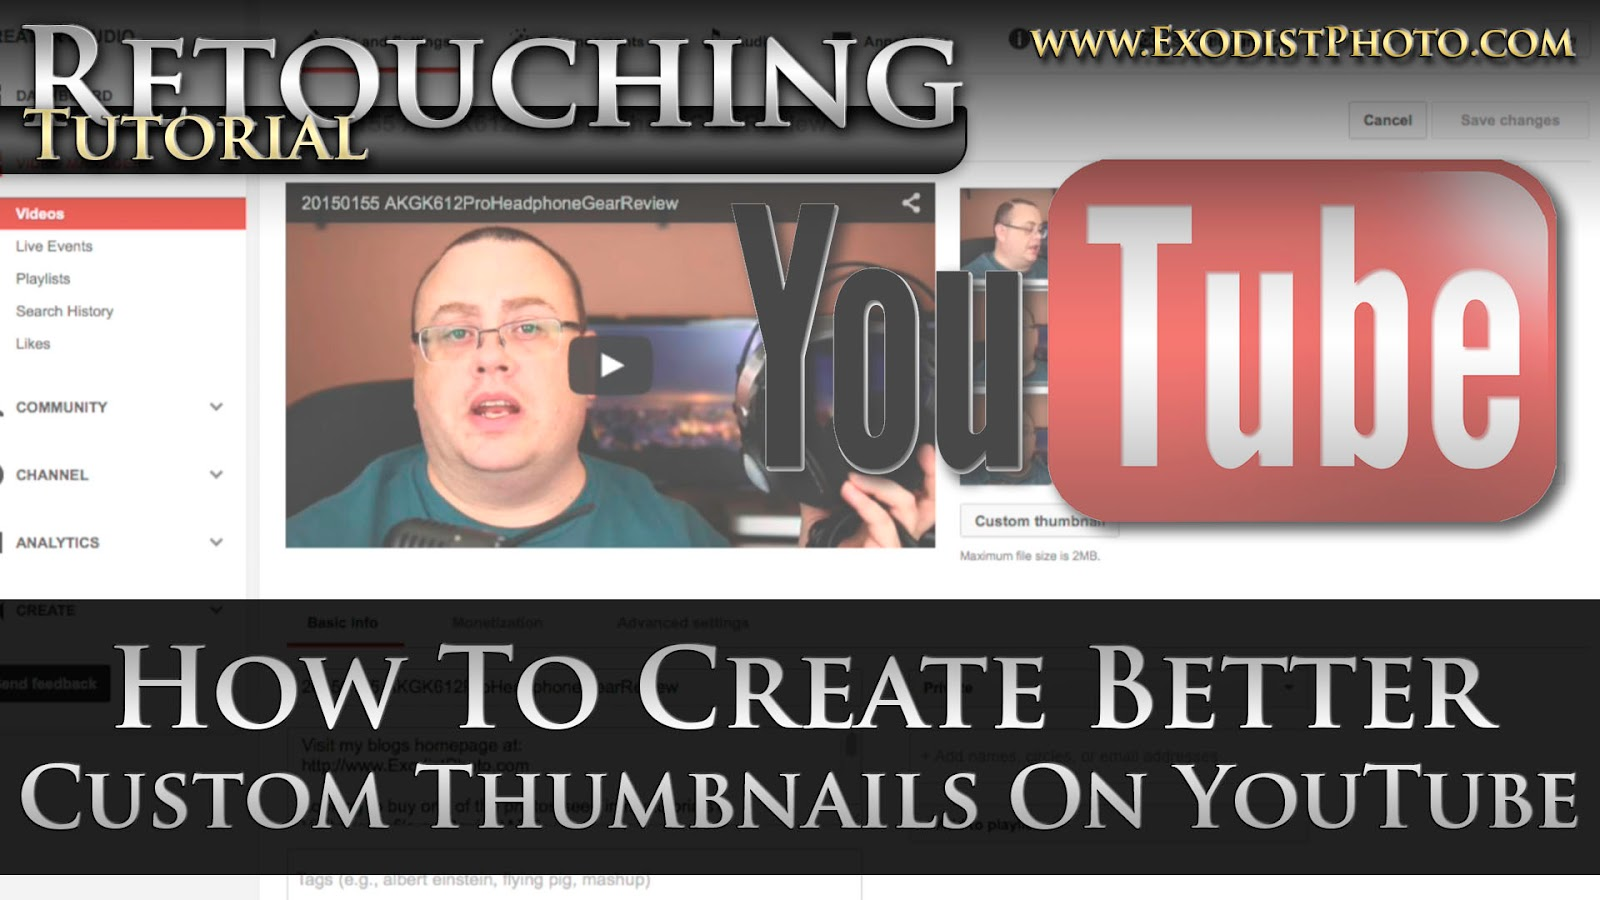 How To Create Better Custom Thumbnails On Youtube, Get More Views | Retouching Tutorials